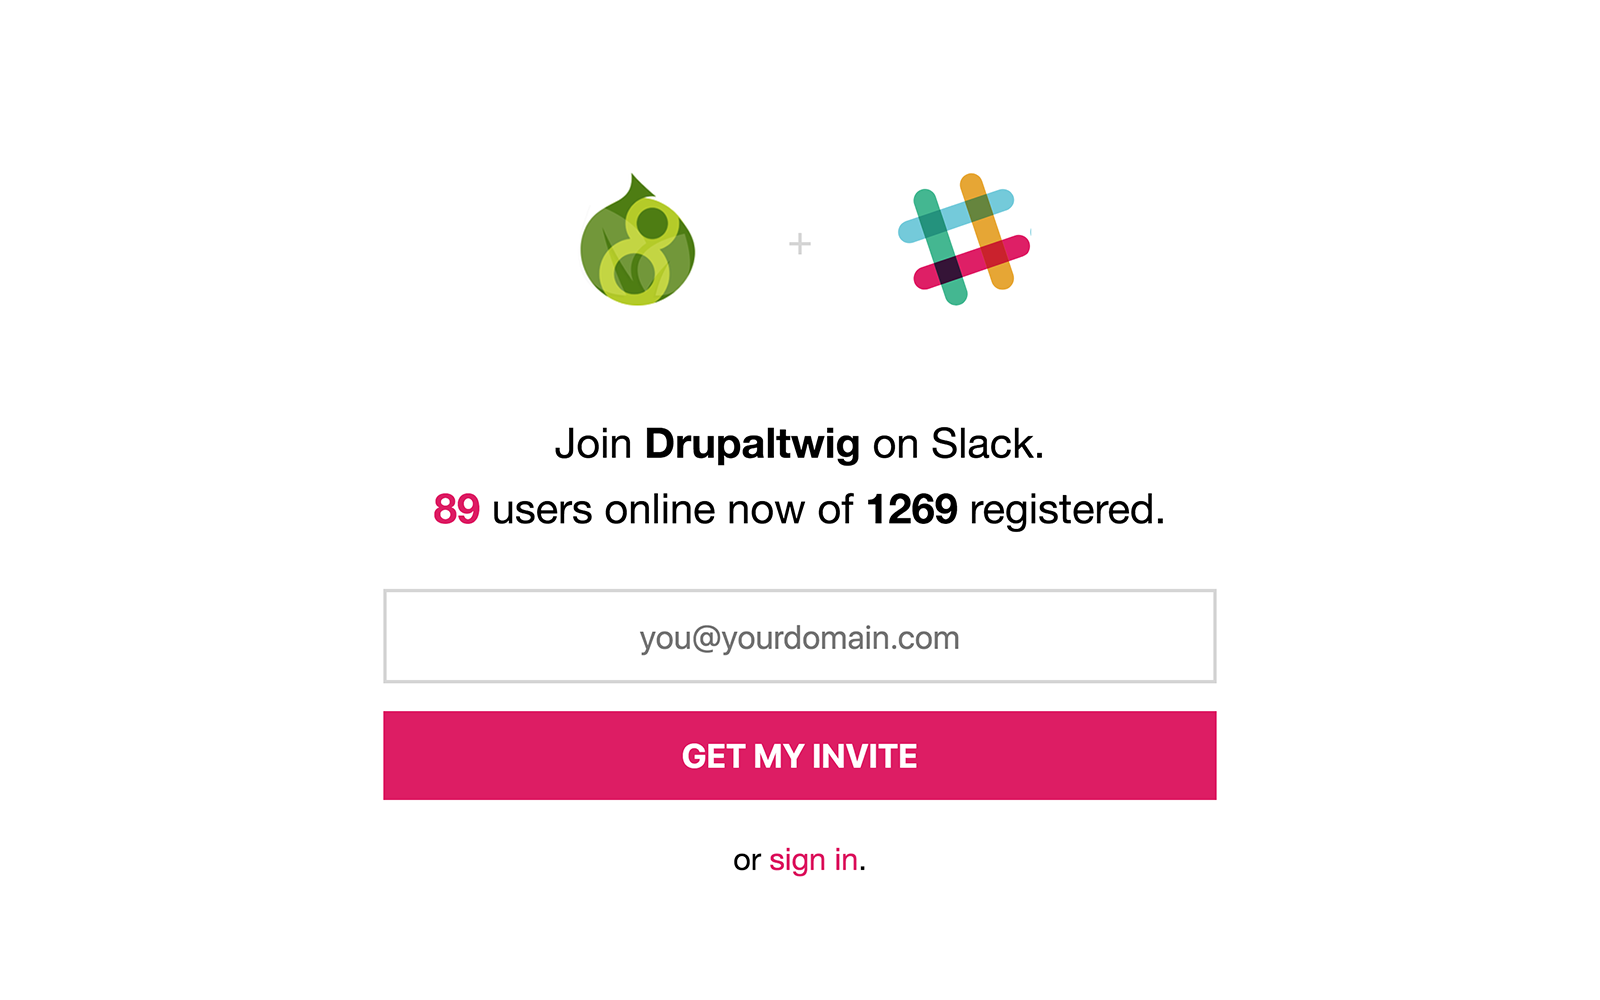 The sign up screen for Drupaltwig on Slack.